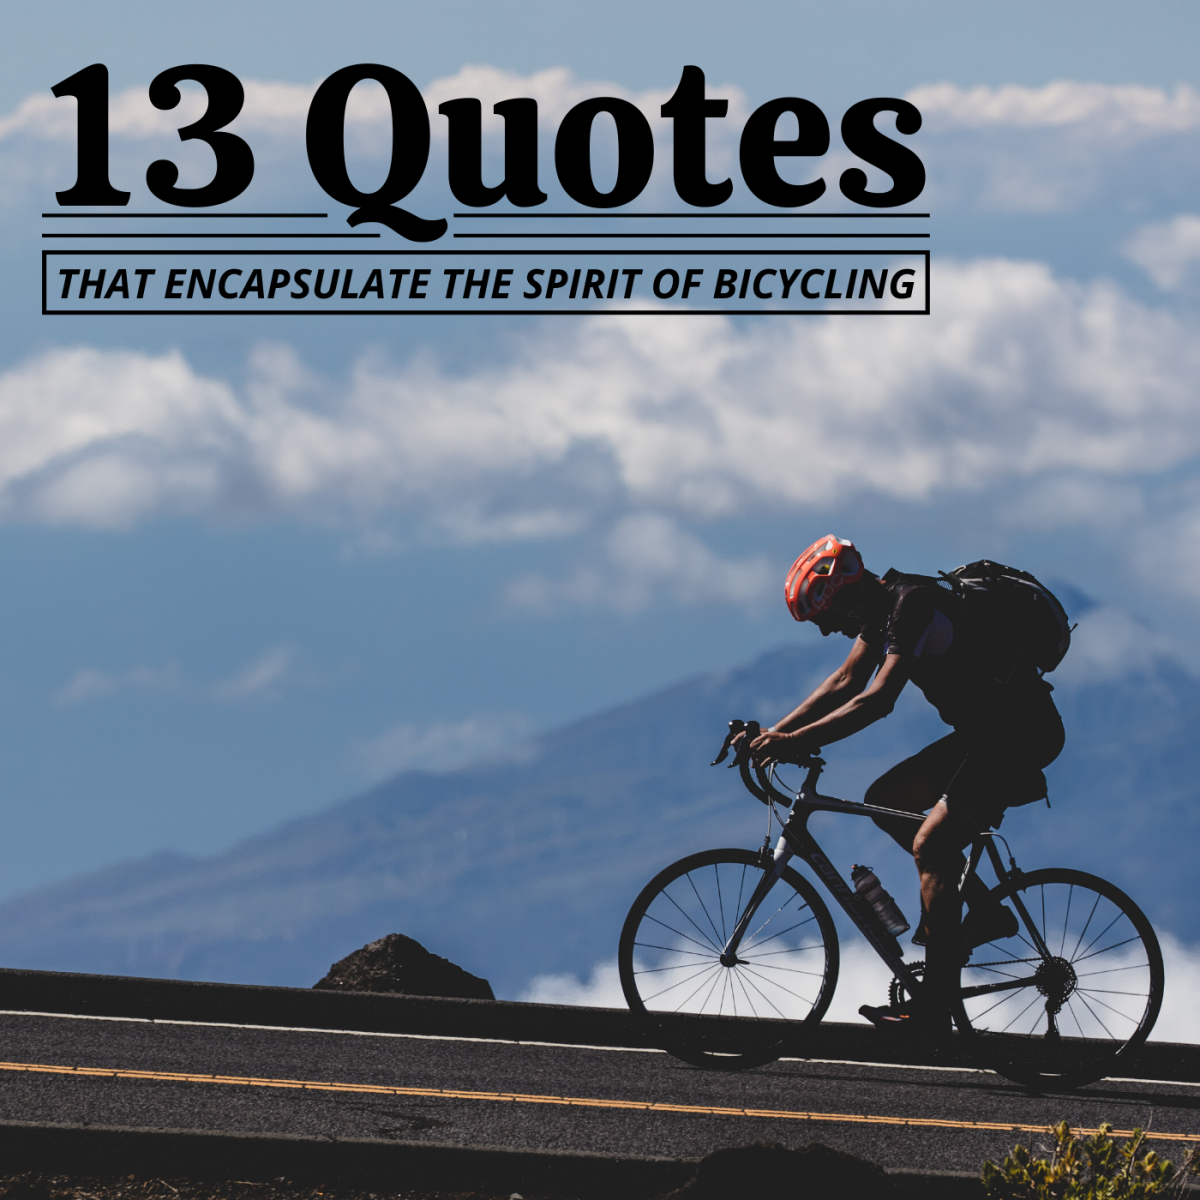 13 Great Quotes About Bikes and Cycling